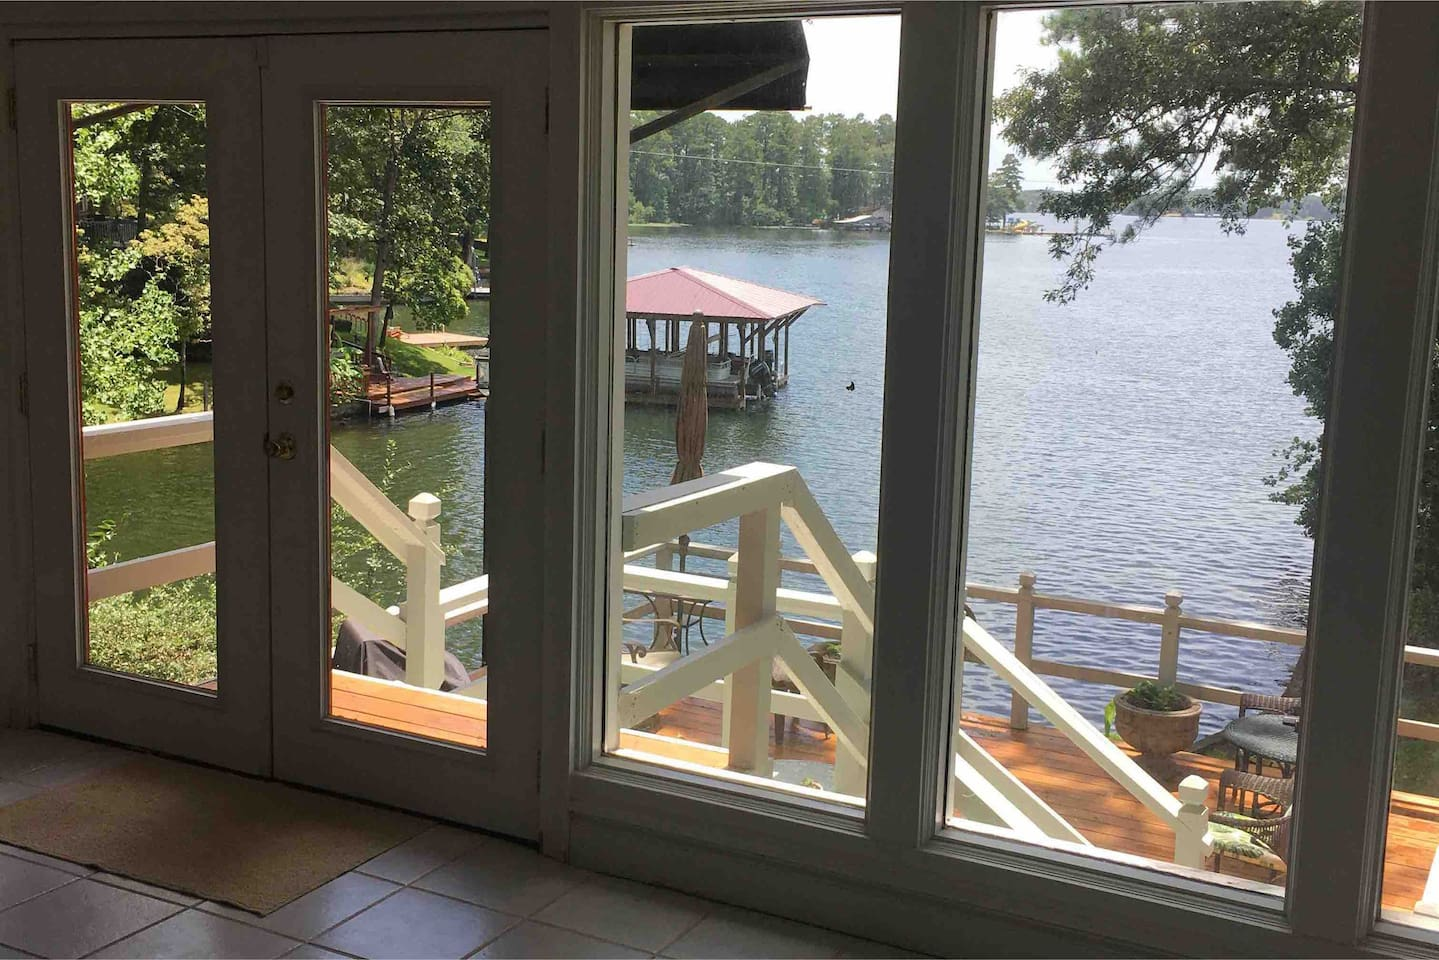 Panoramic views from the sunroom. Home is right on the water! Deck in the back of the house with plenty of seating to enjoy the view!